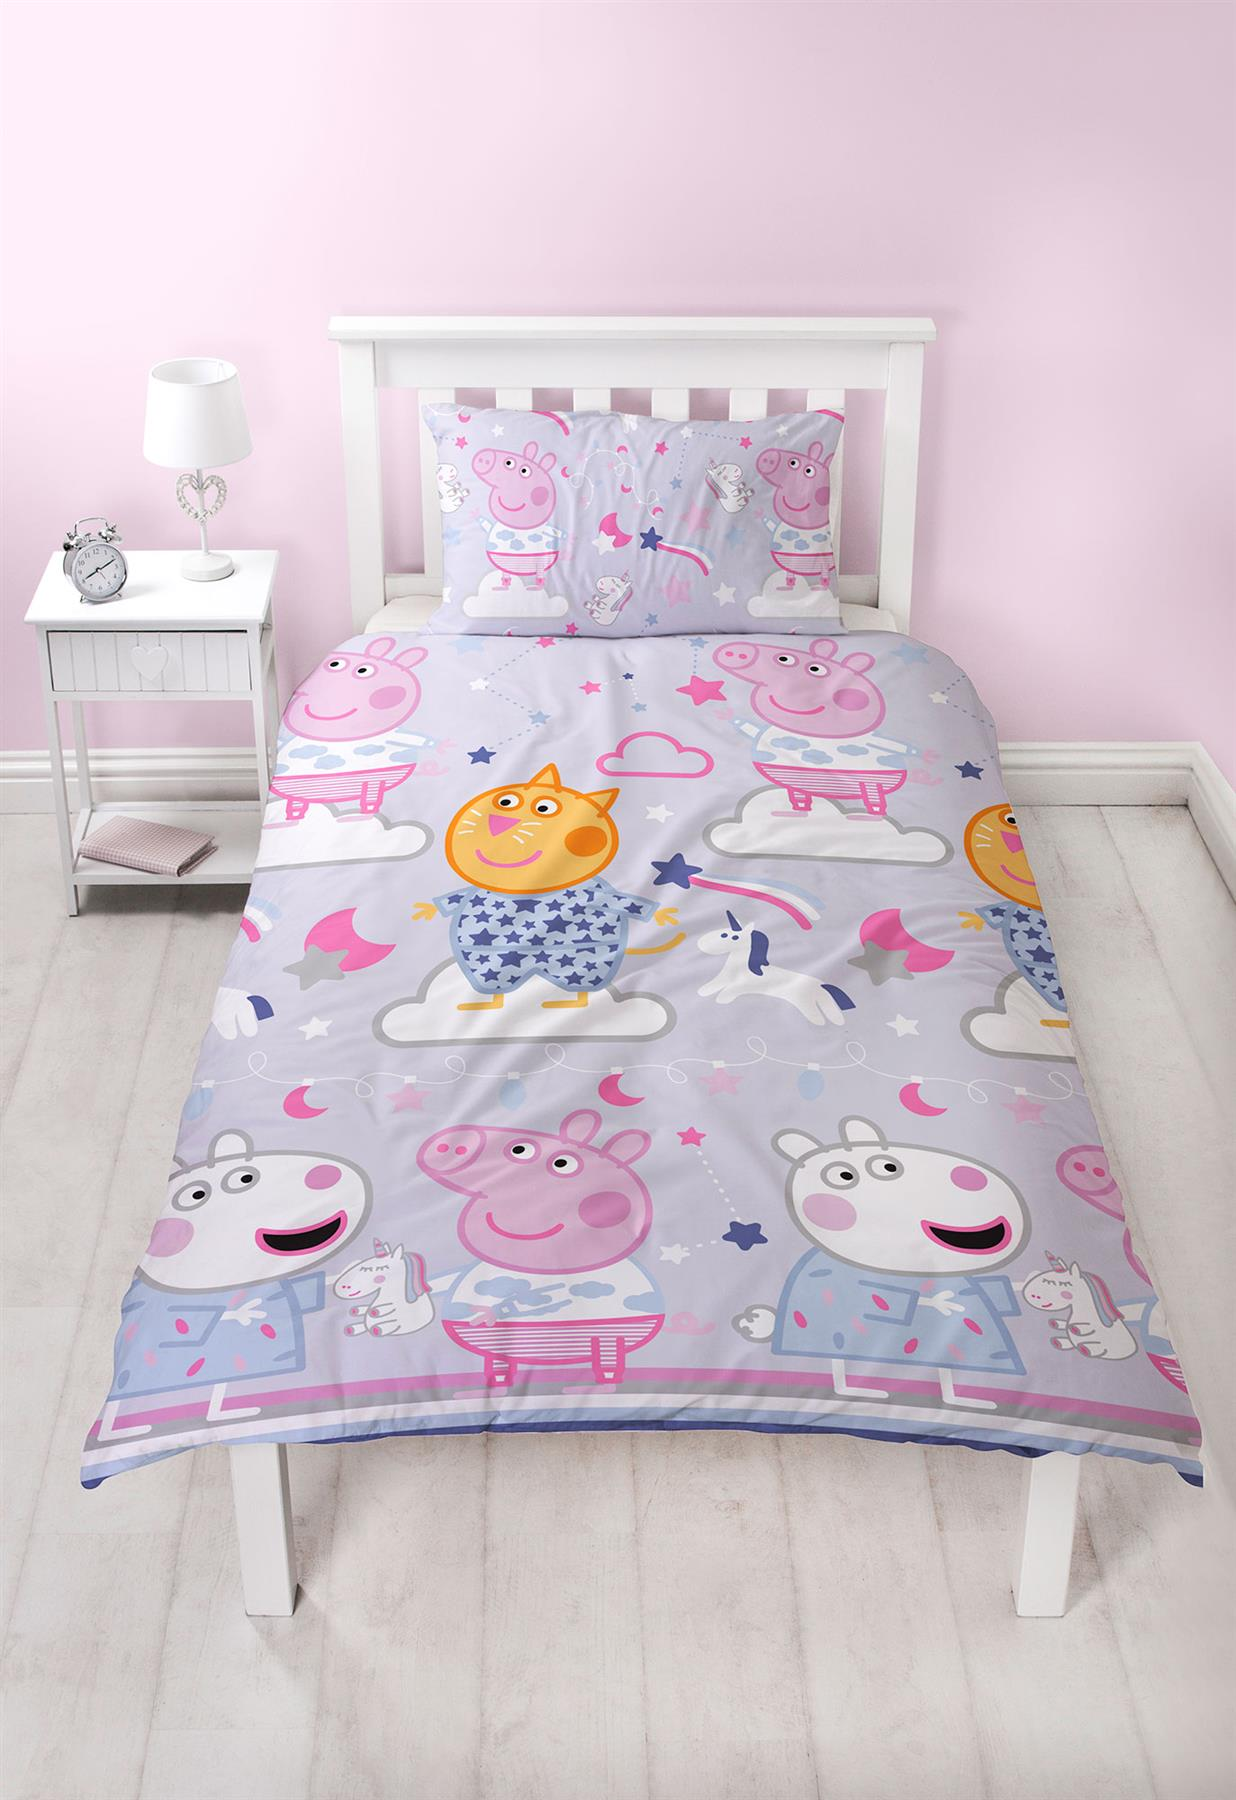 Oficial-Peppa-Pig-George-fundas-nordicas-SINGLE-doble-Ropa-De-Cama-Reversible miniatura 31